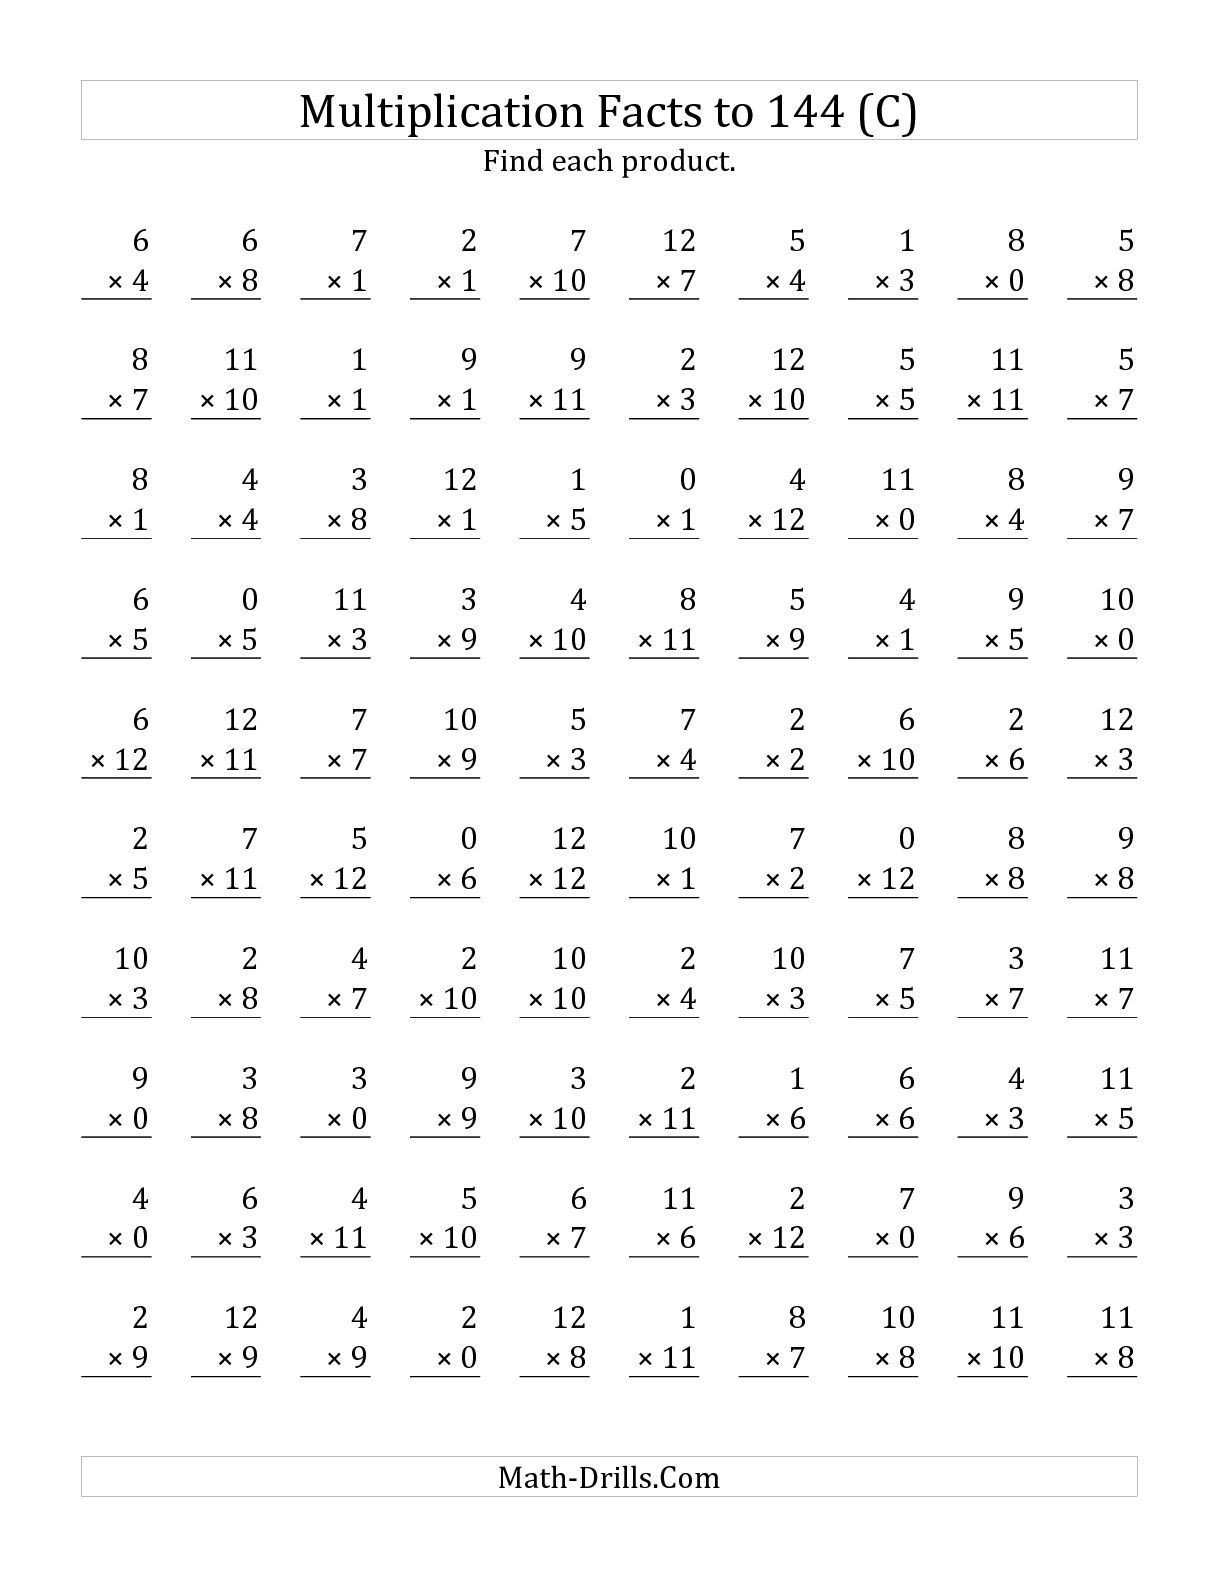 Multiplication Facts 0 12 Worksheet the Multiplication Facts to 144 Including Zeros C Math Wor